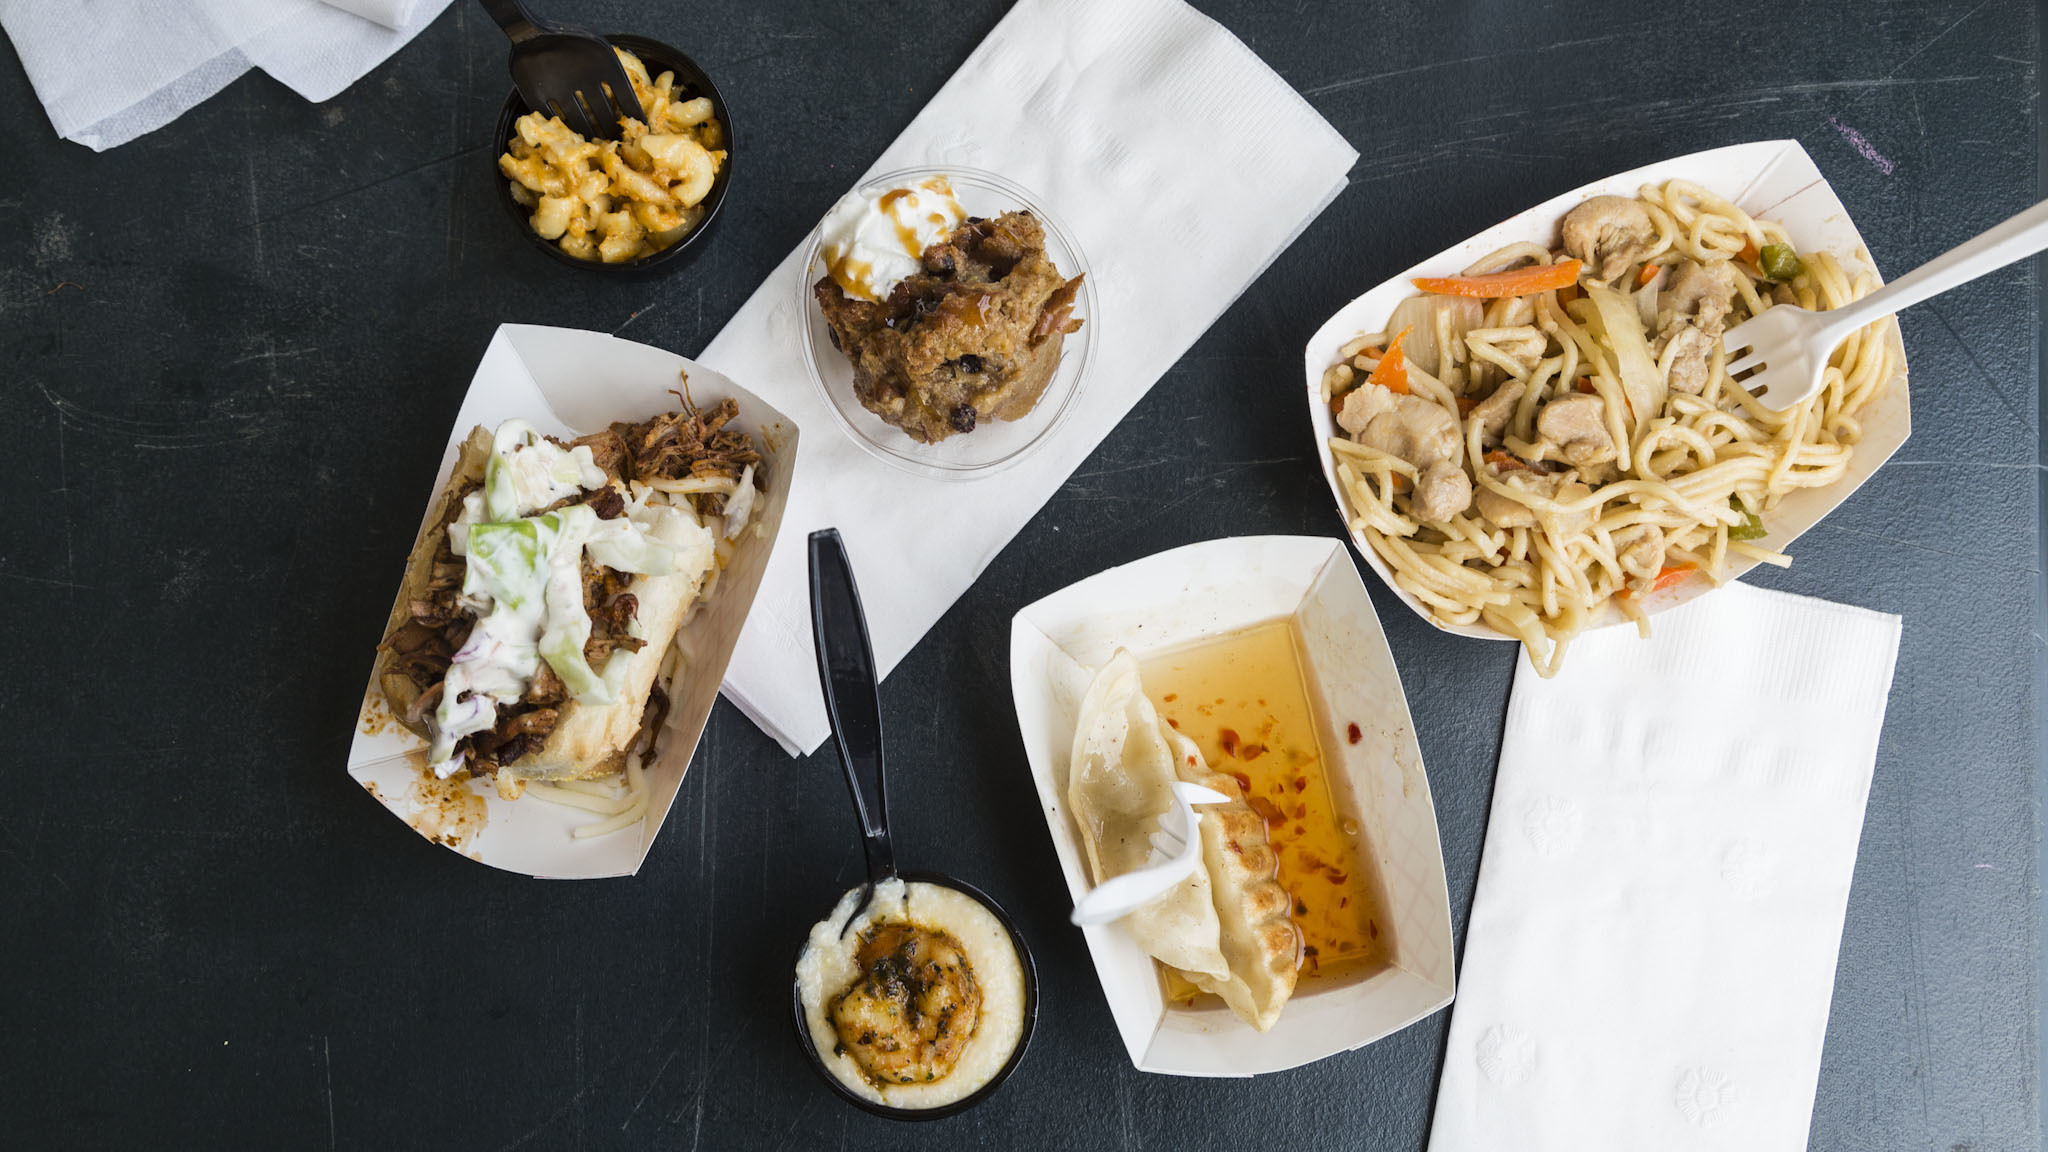 12 new dishes to eat at Taste of Chicago